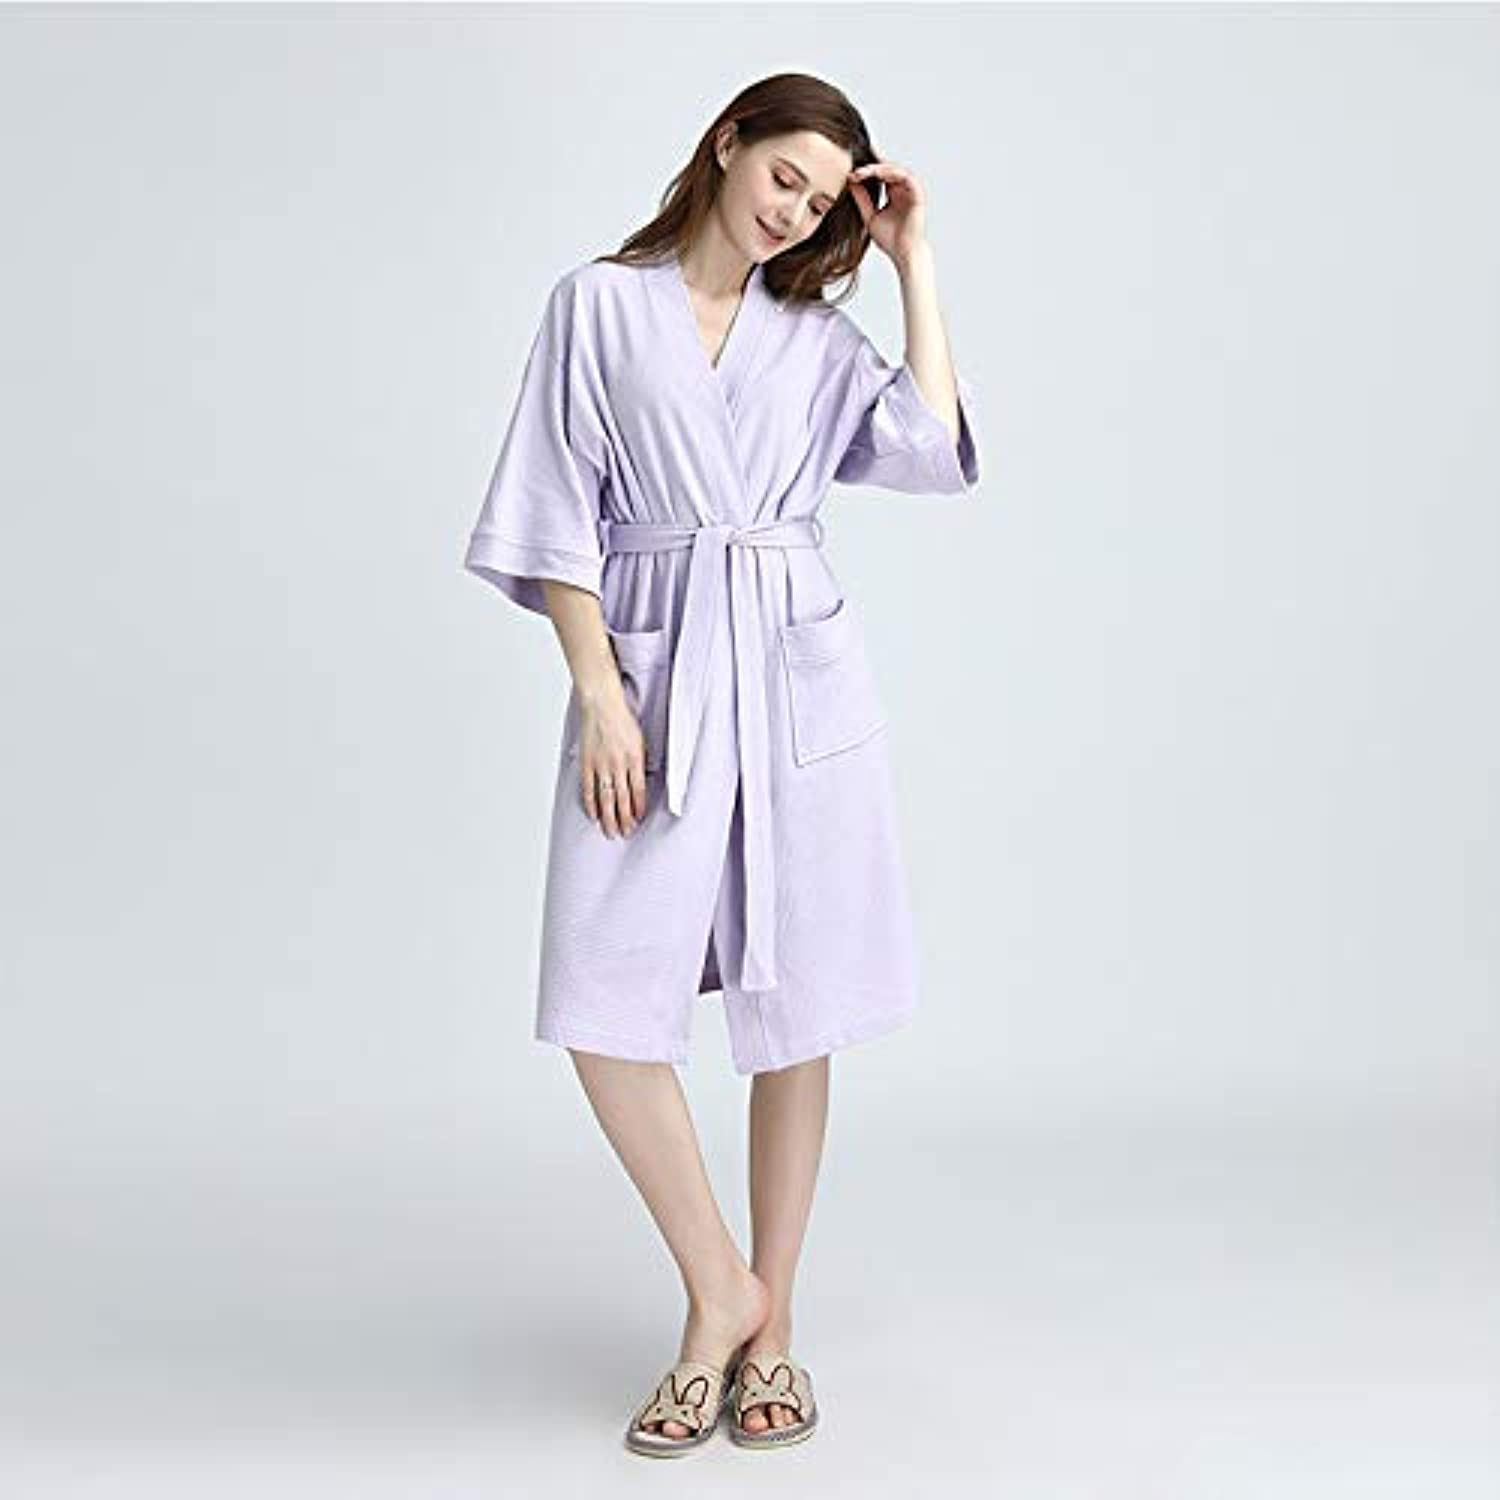 DALAI Summer Pajamas Women's Thin Cardigan Nightgowns Cotton Casual Comfort Bathrobes (color   Purple, Size   M) (color   Purple, Size   M)